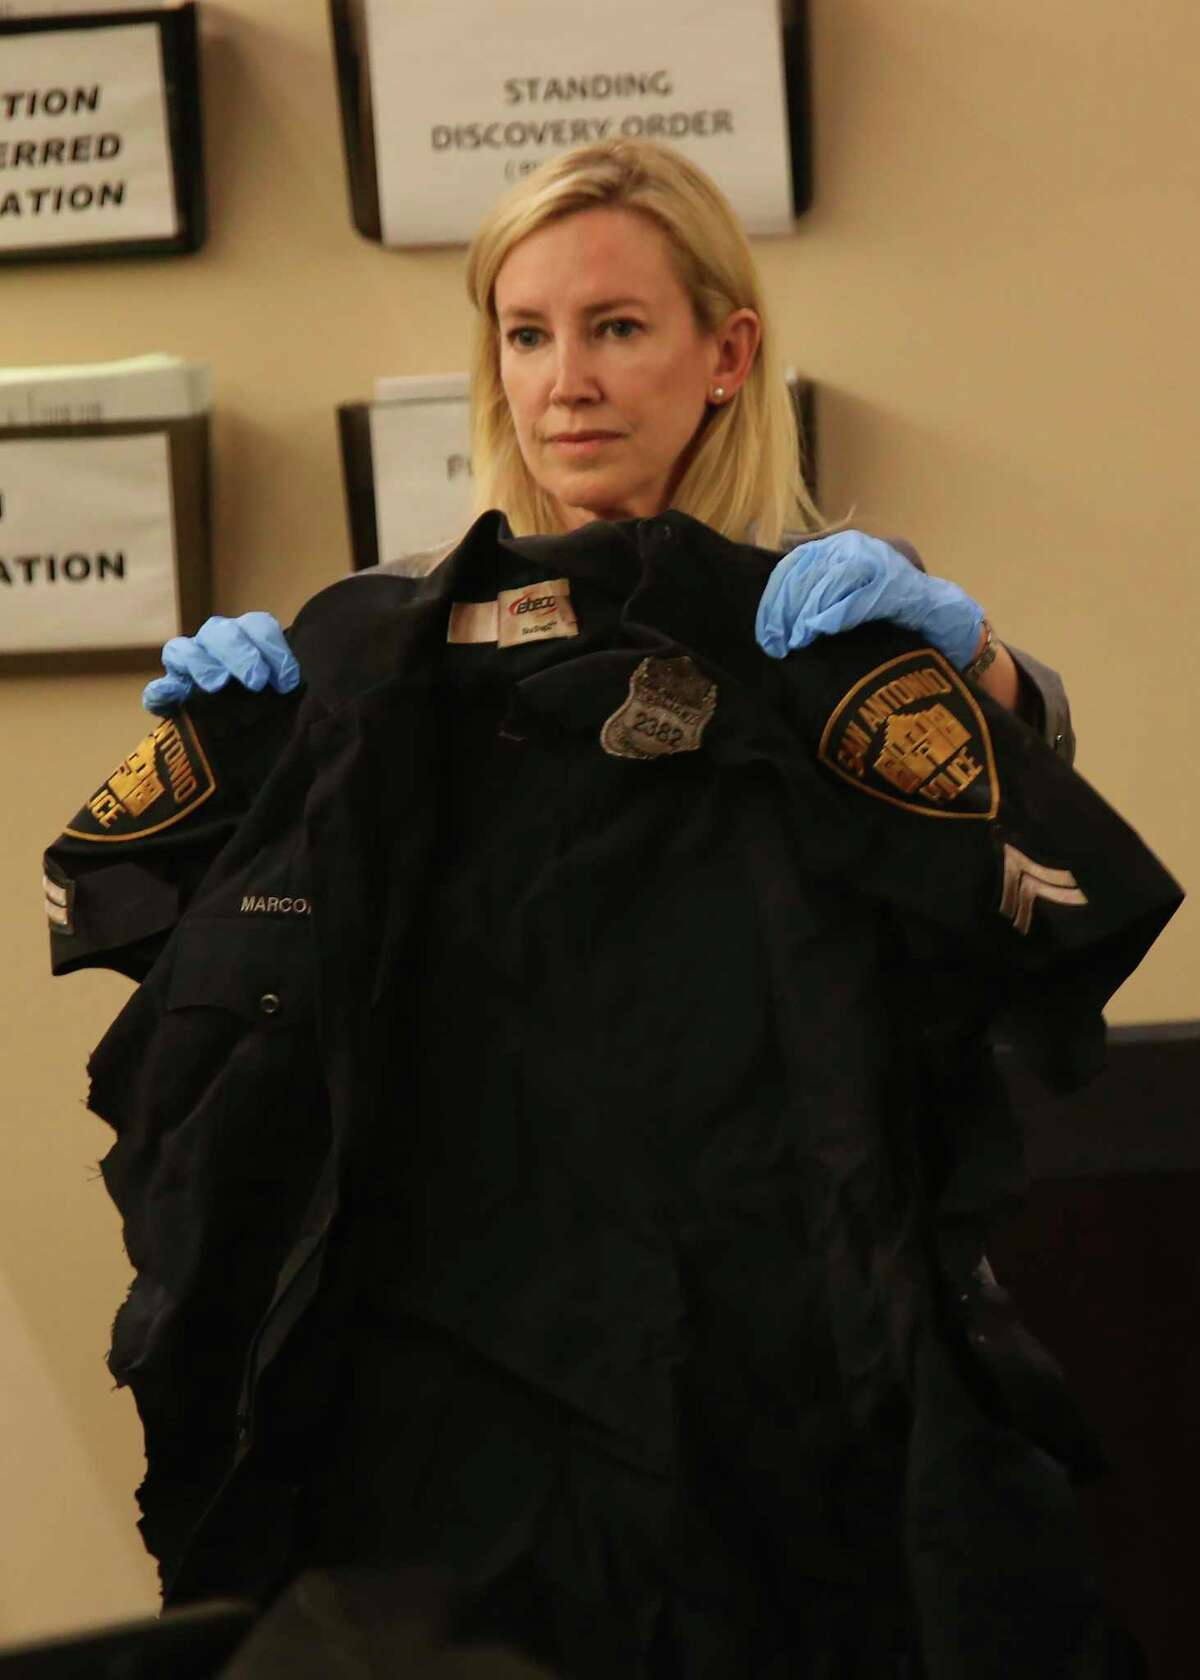 During the capital murder trial of Otis McKane on Friday, July 23, 2021, Bexar County prosecutor Tamara Strauch introduces a uniform worn by Detective Benjamin Marconi on the day he was shot to death.